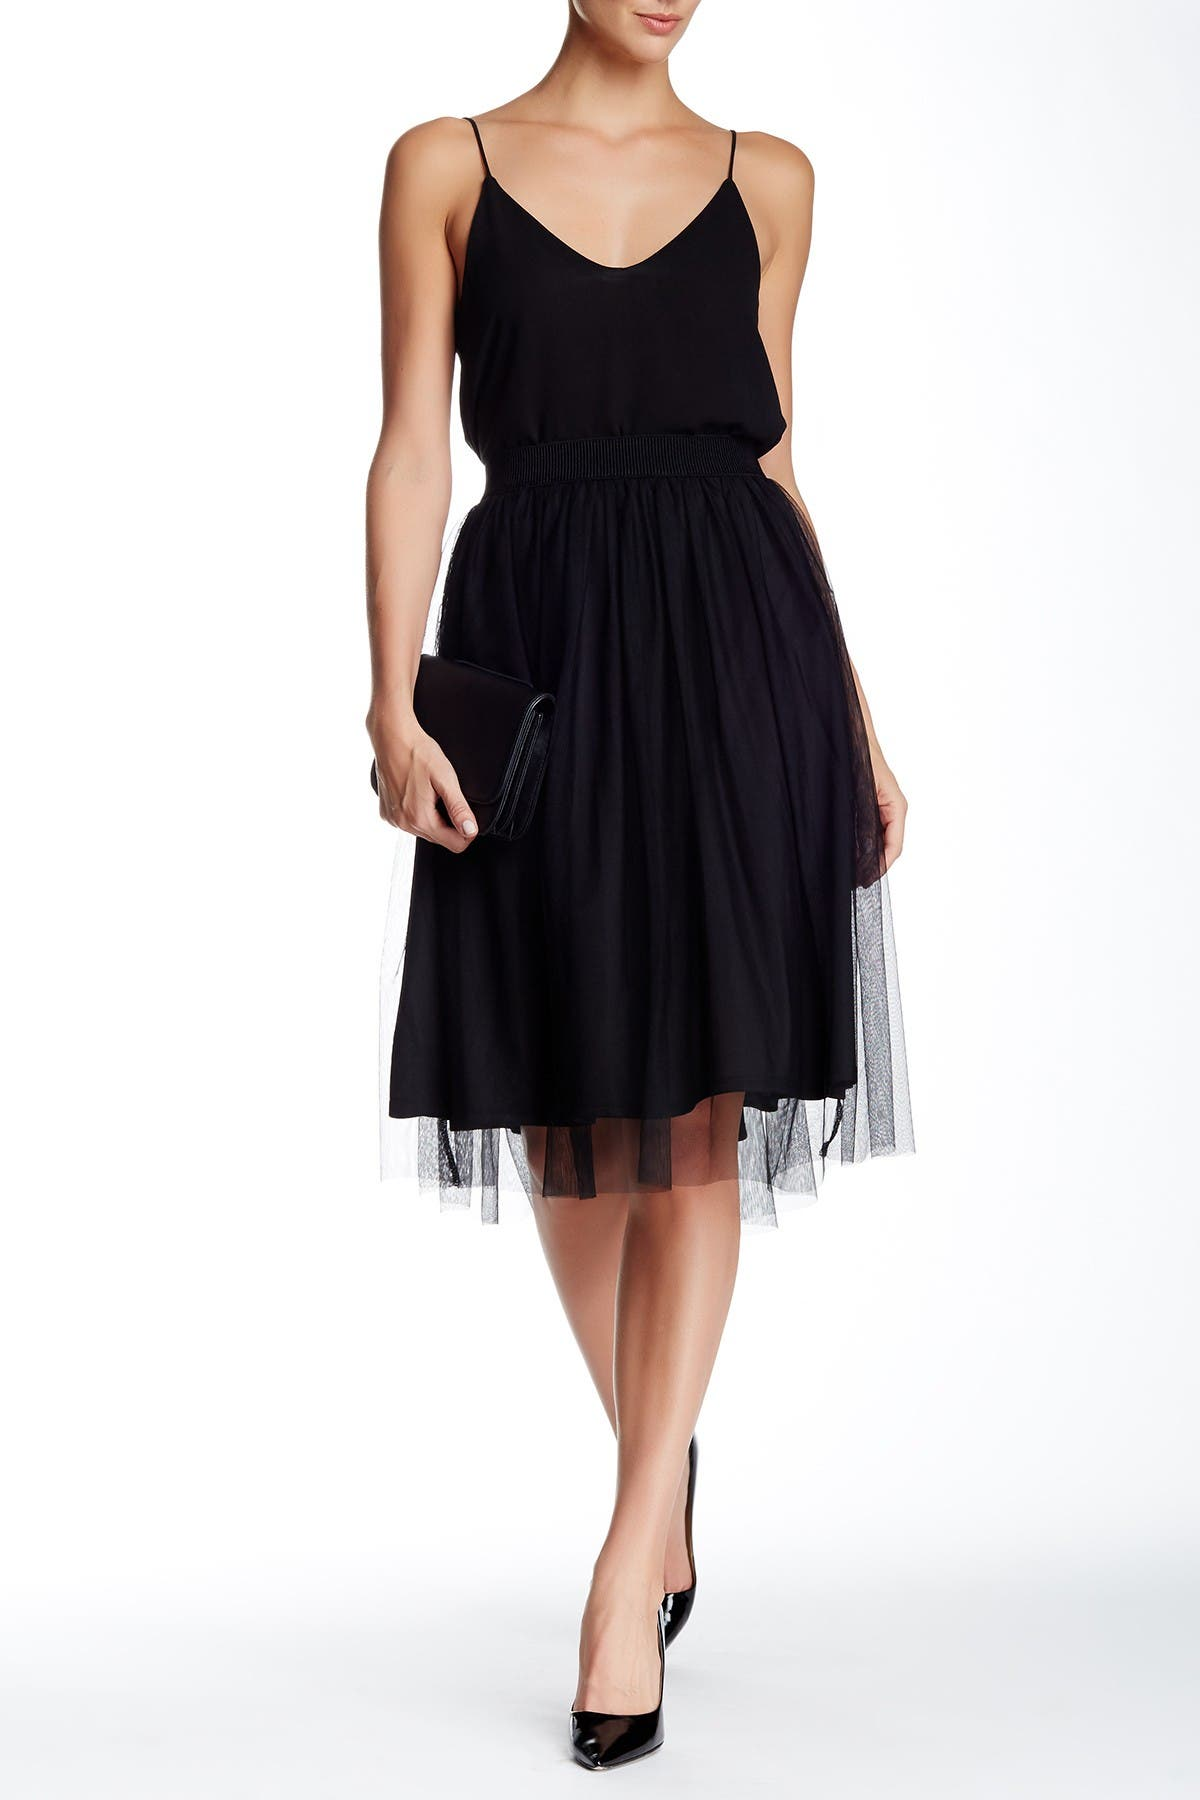 Image of Free Press Tulle Skirt